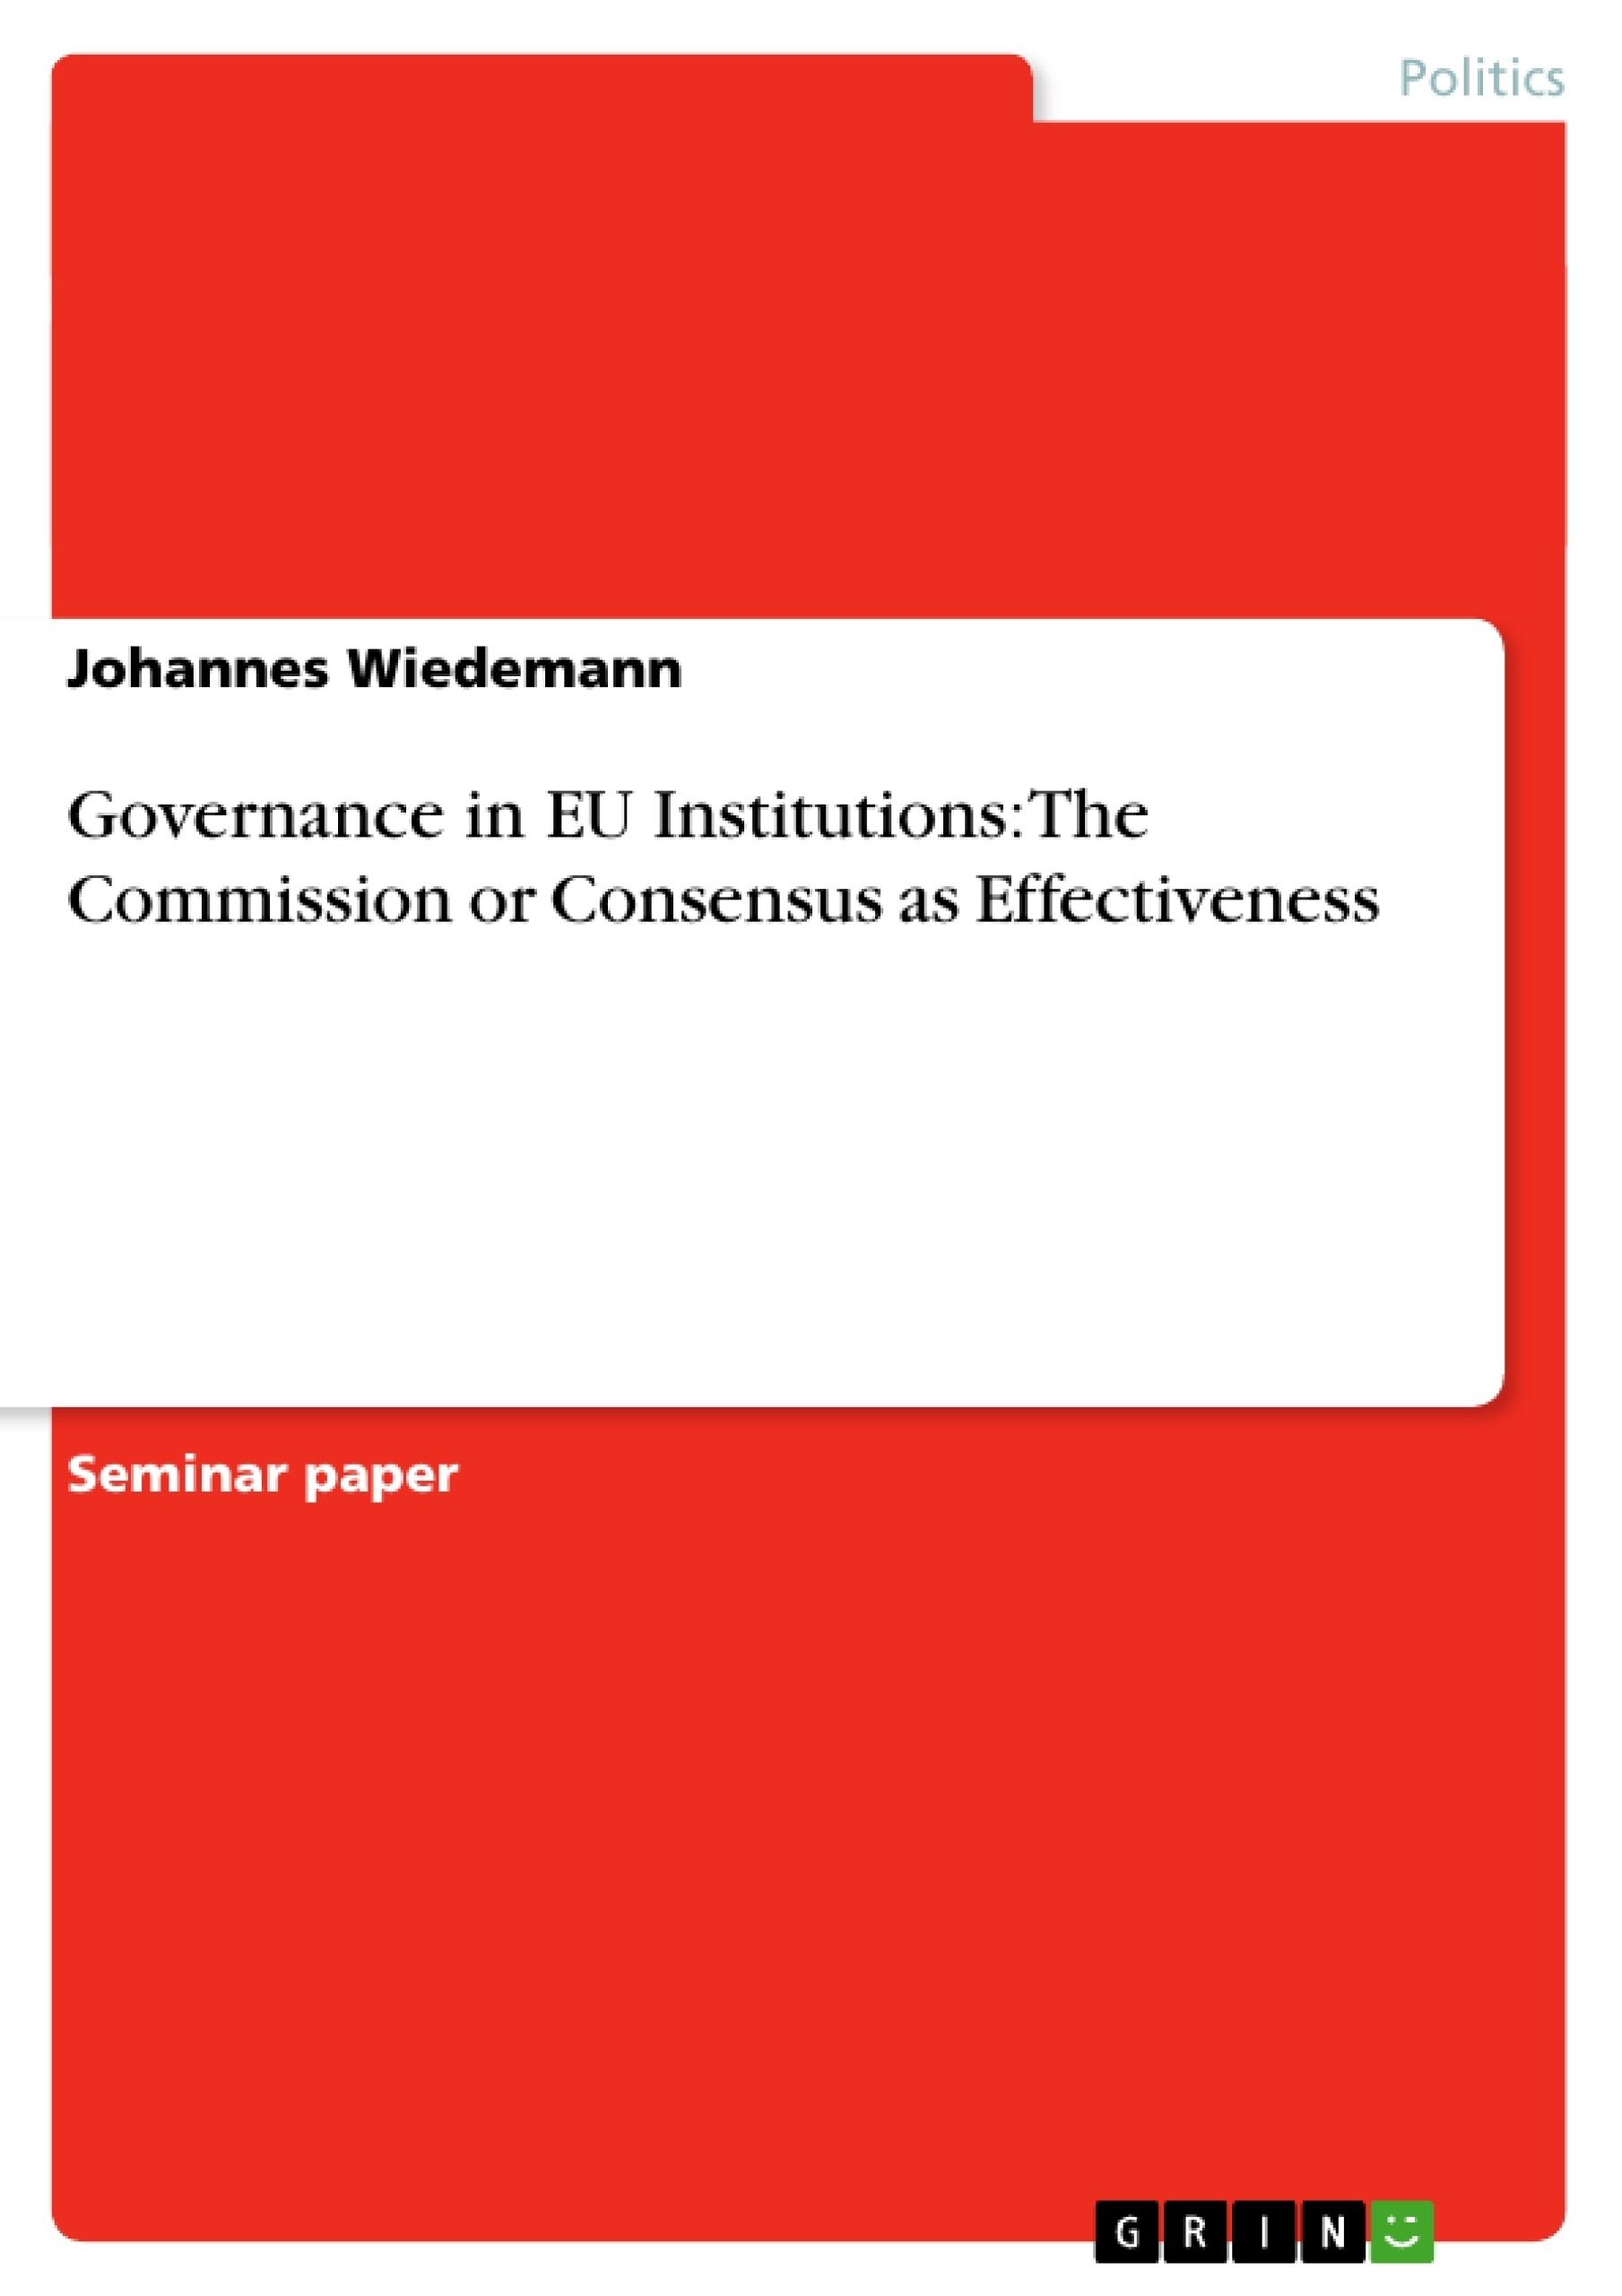 Title: Governance in EU Institutions: The Commission or Consensus as Effectiveness